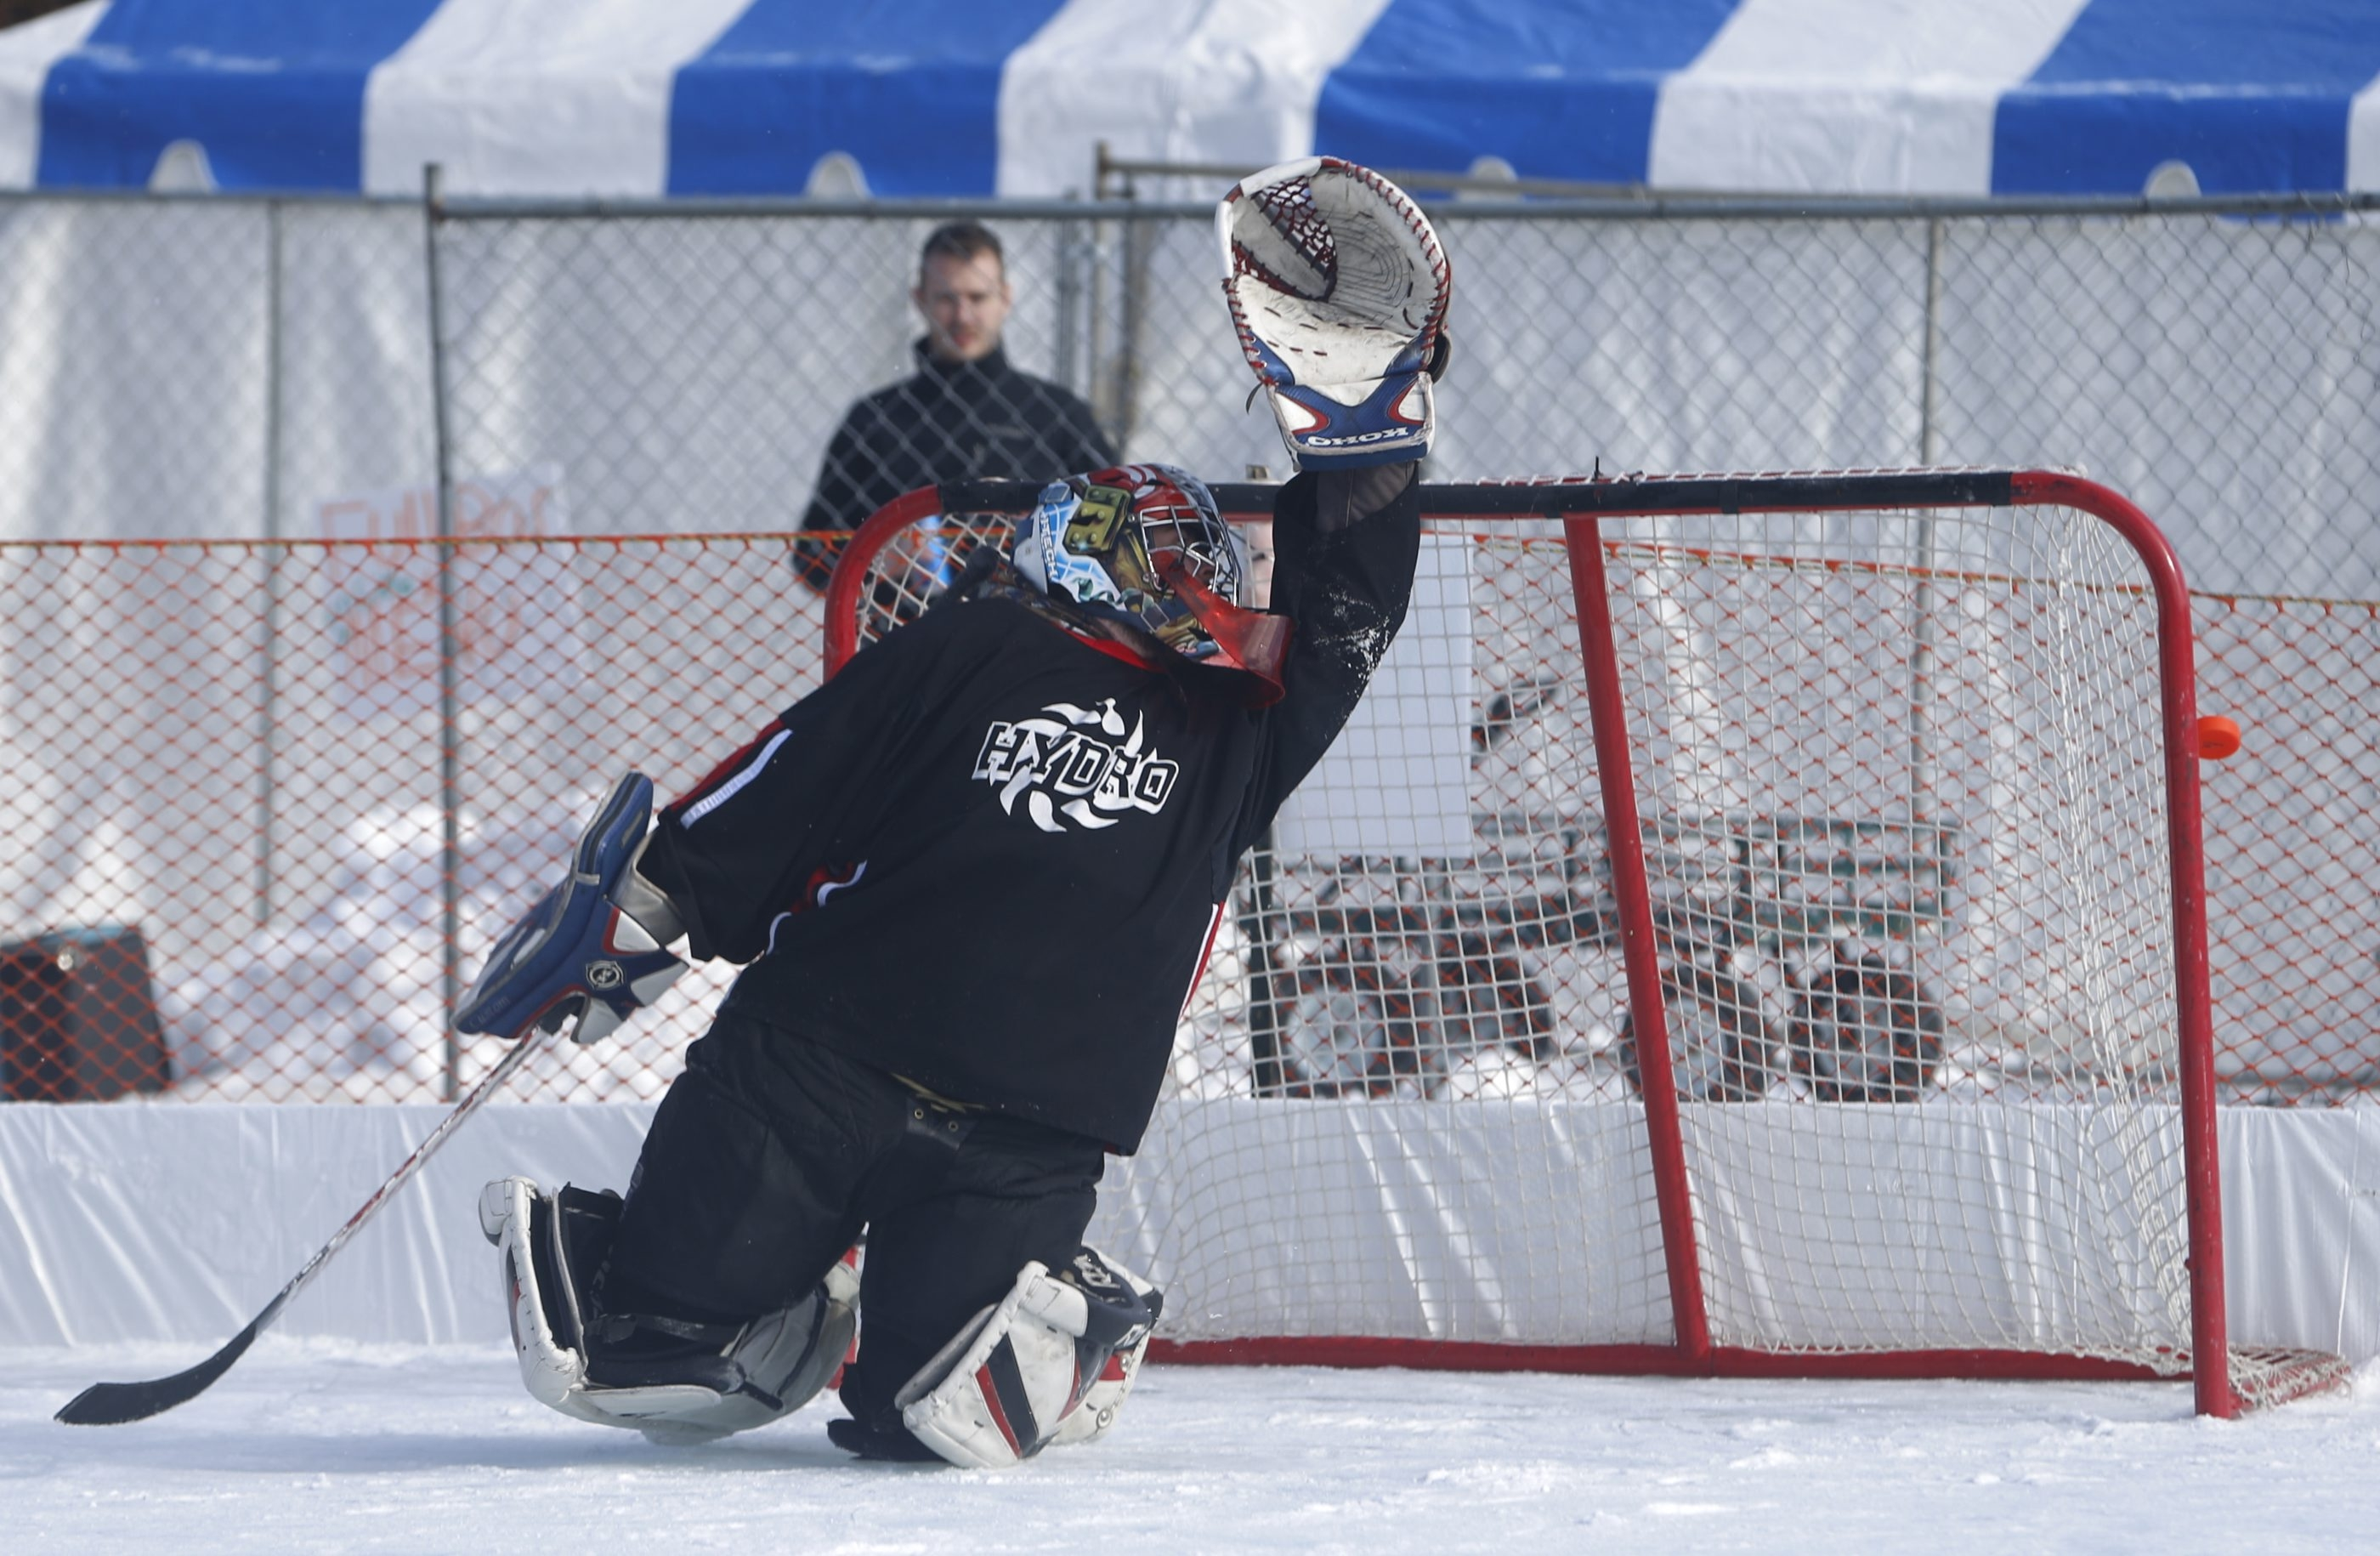 Hydro goalie Zack Patti defends against a shot by an Elbows of Fury player that hit the post in the Tim Hortons Backyard Classic pond hockey tournament. See a photo gallery at BuffaloNews.com.